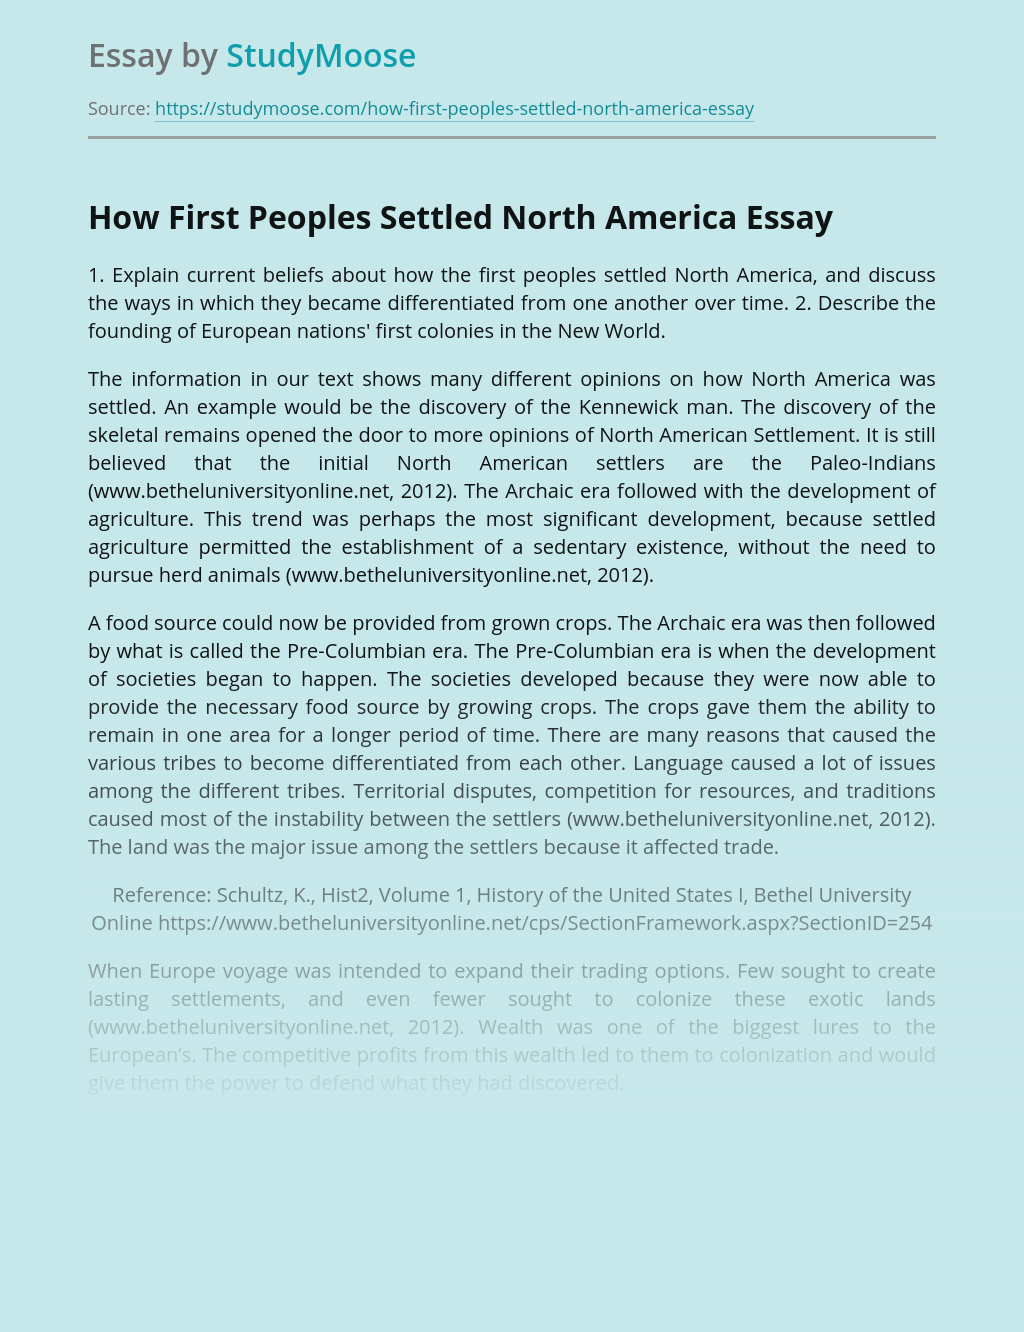 How First Peoples Settled North America